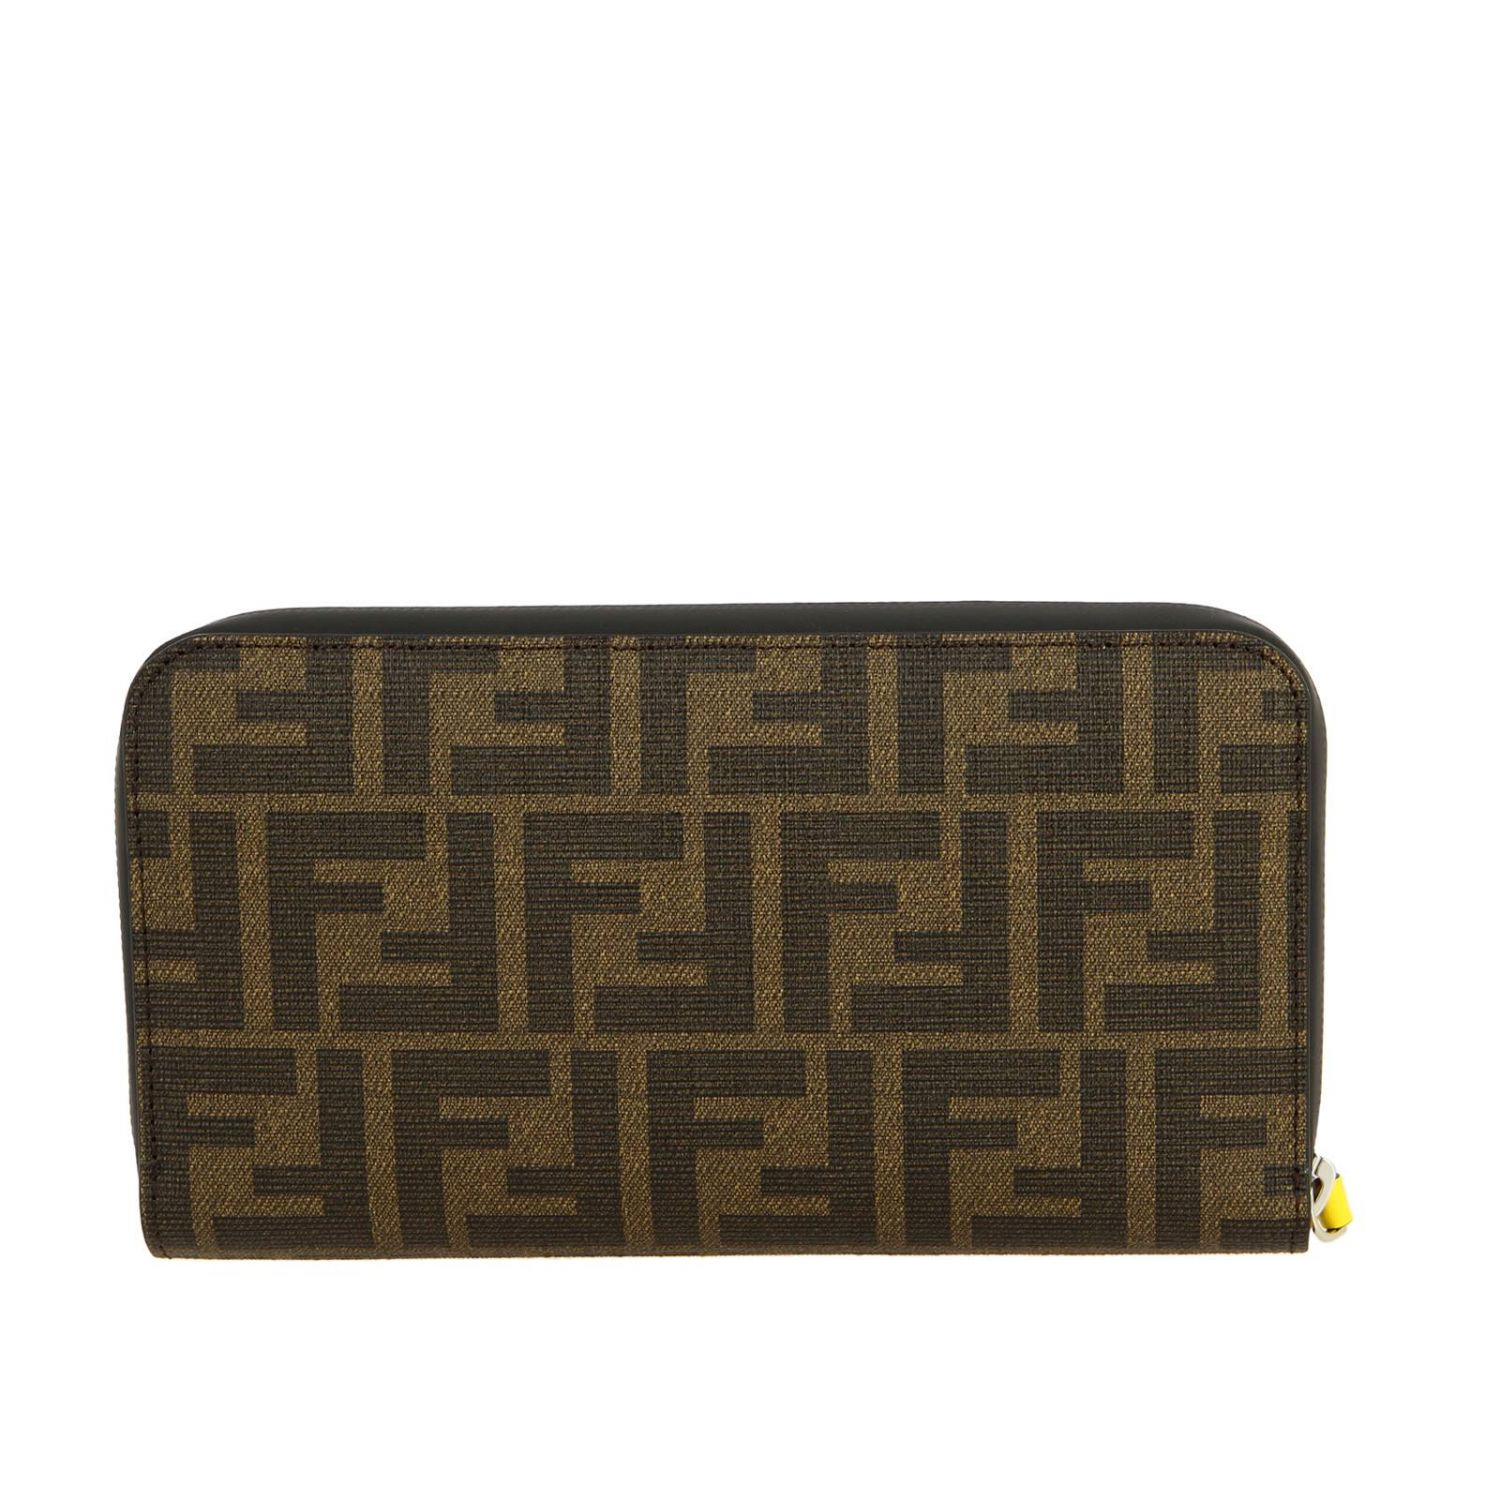 Fendi Continental FF all-over leather wallet with Rome print brown 3